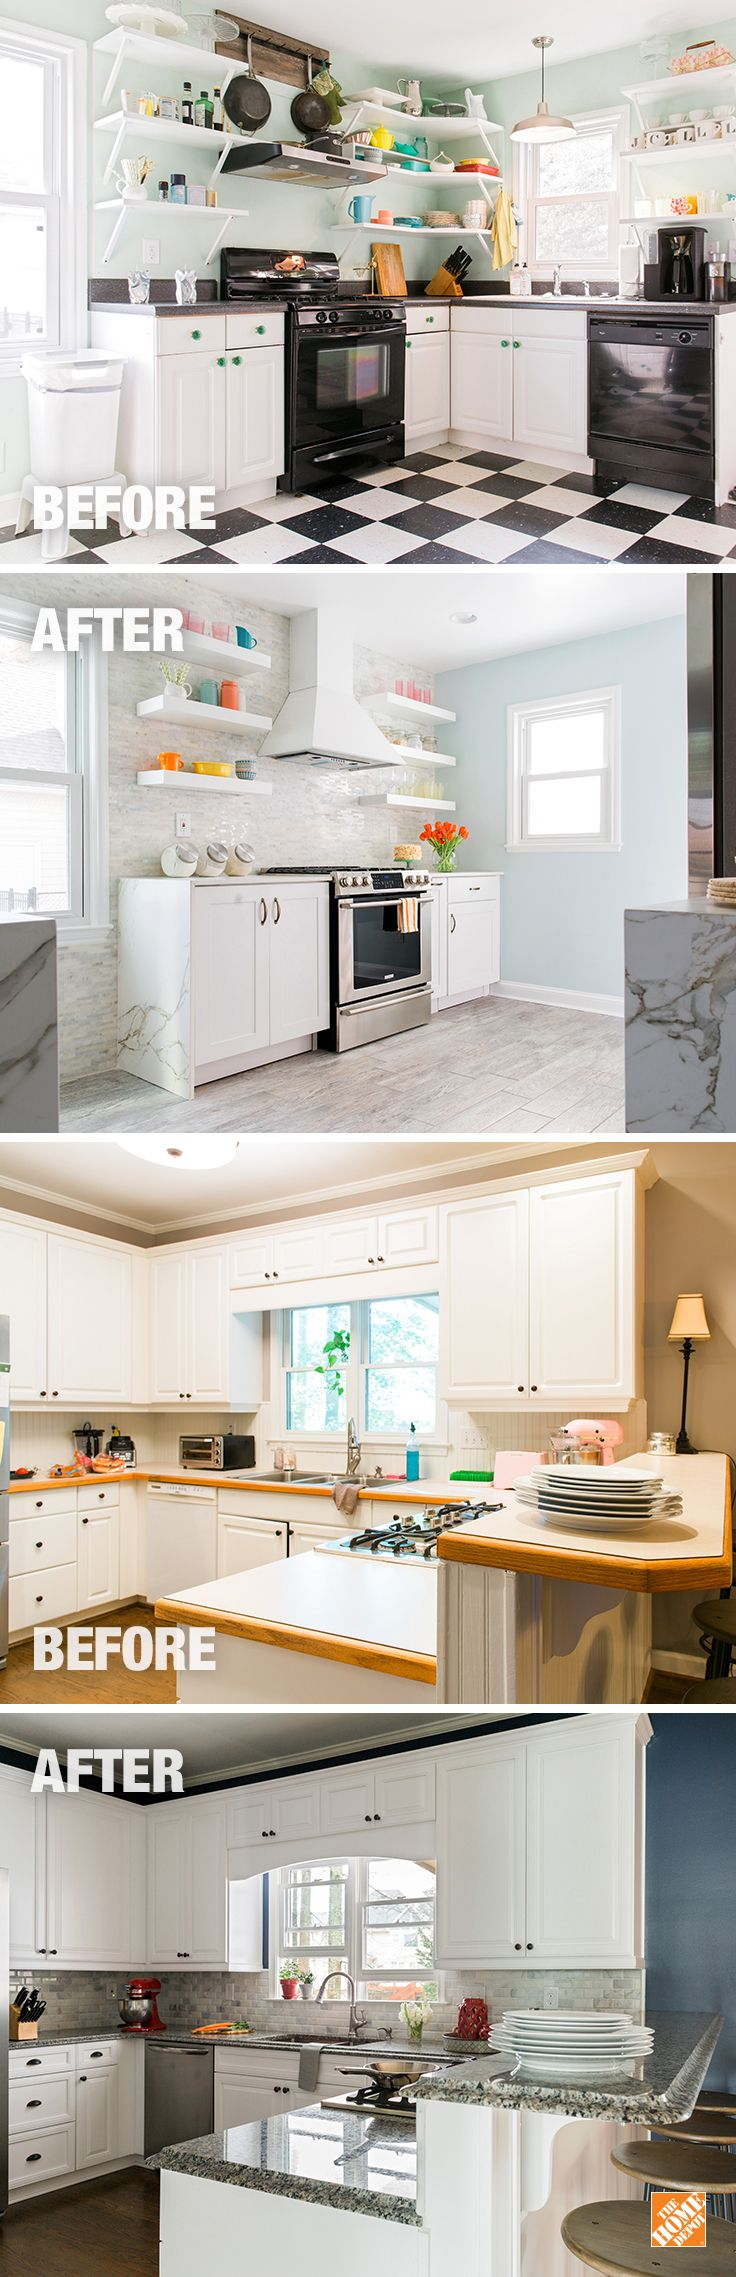 kitchen ideas inspiration home depot kitchen remodeling Get inspiration with The Home Depot s thoughtful Kitchen designs From renovation ideas to a Kitchen remodel find the best ideas in one place